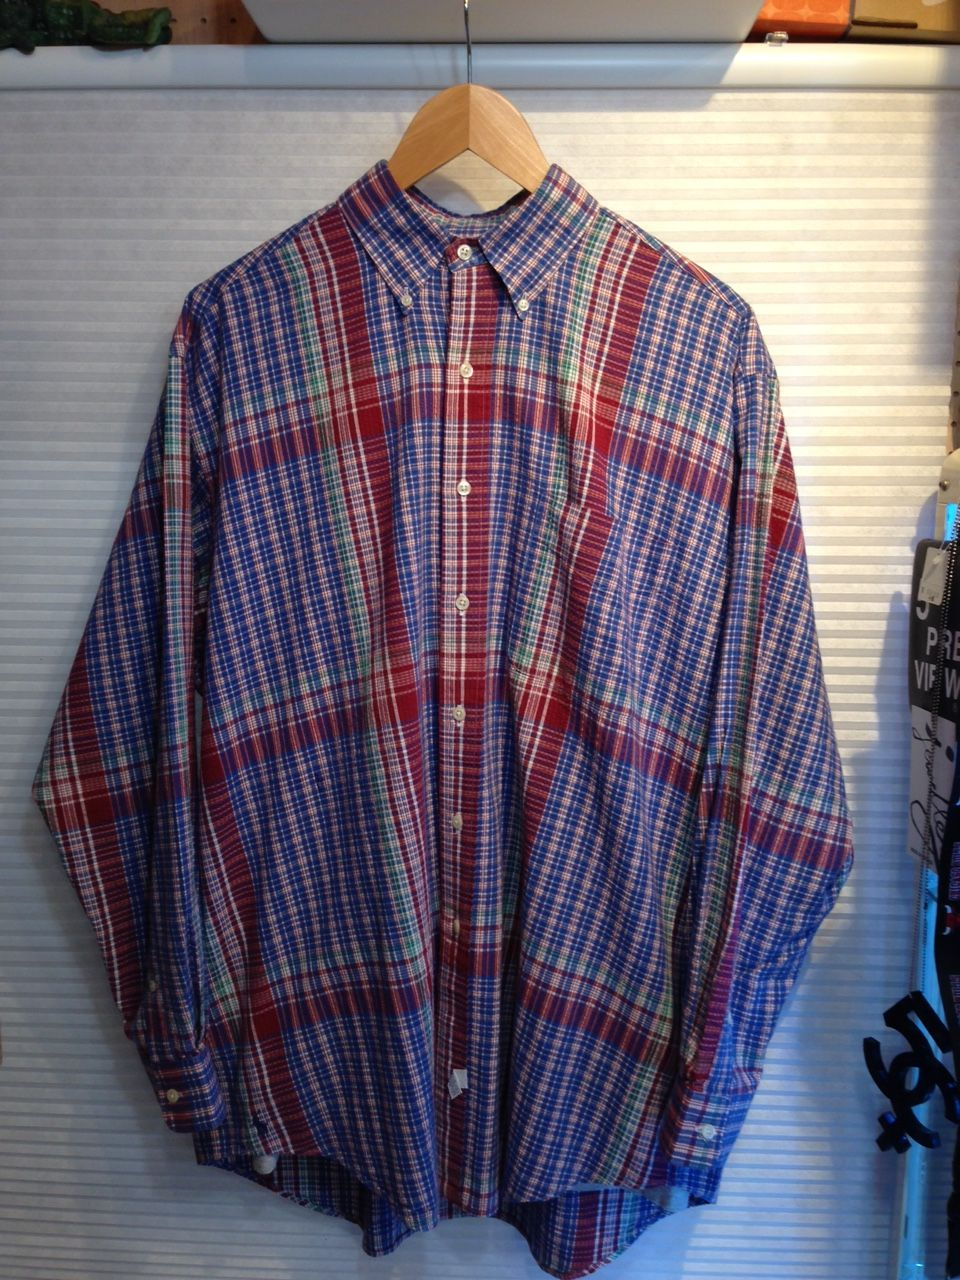 Polo Ralph Lauren/ポロラルフローレン THE BIG SHIRT 1990's(USED)